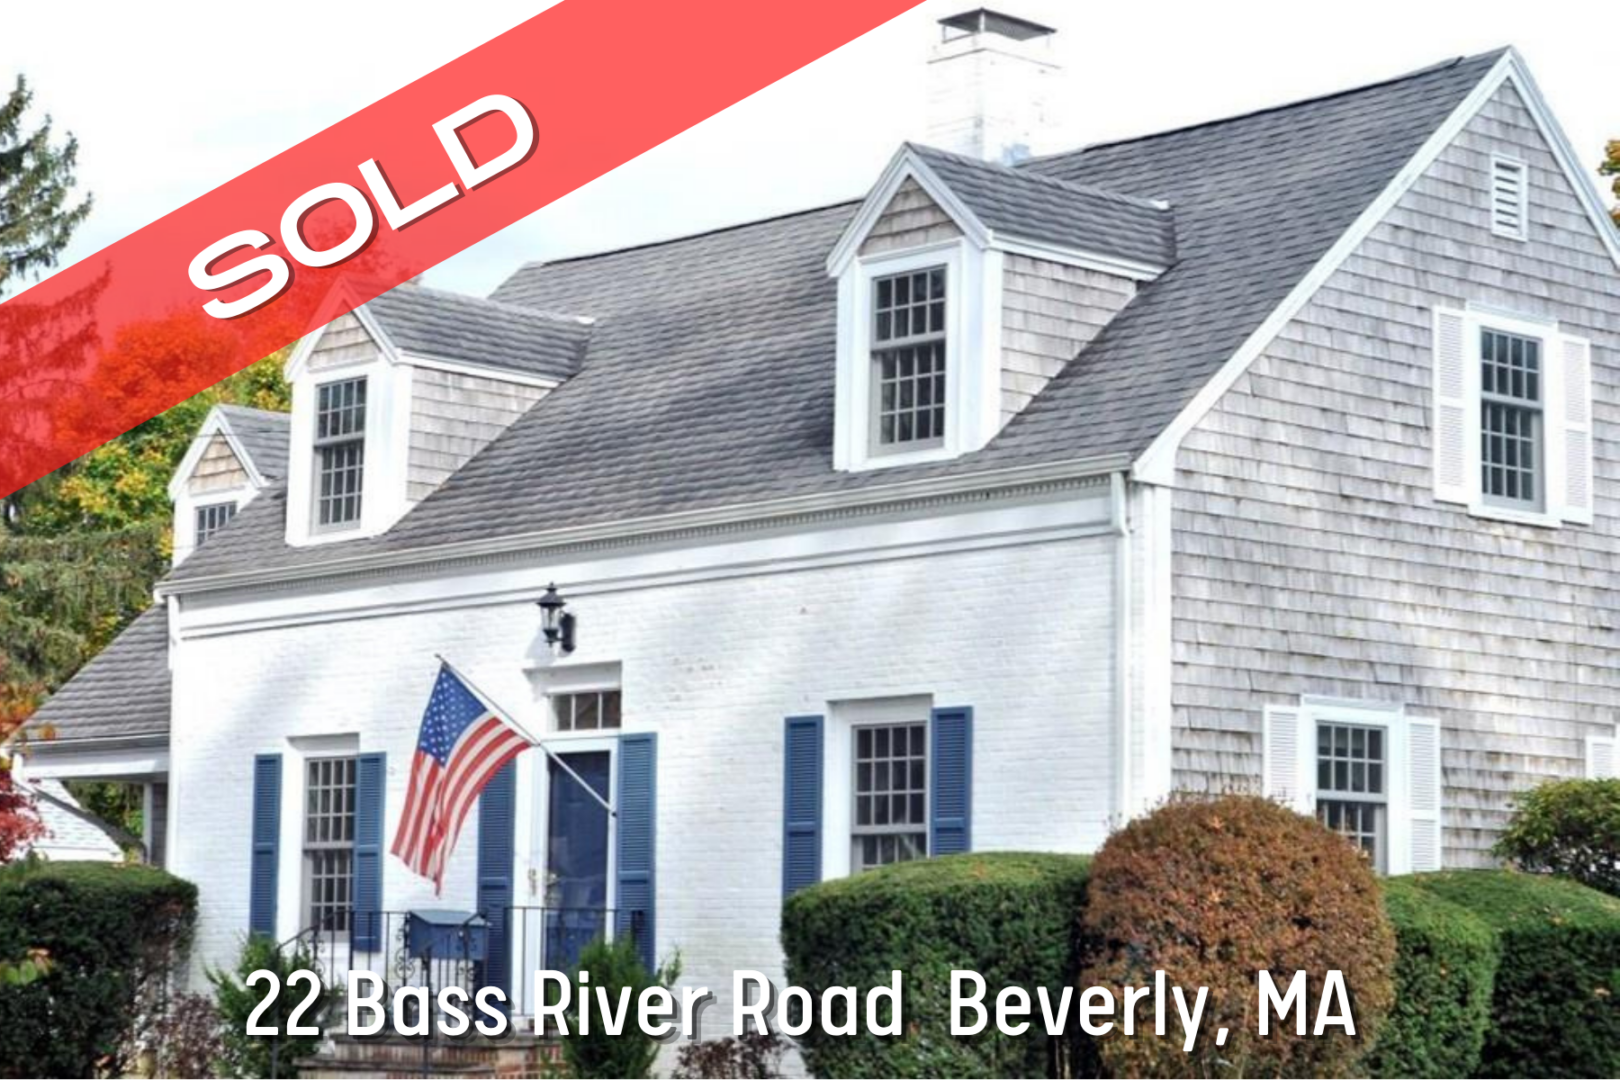 Sold House in Beverly, MA